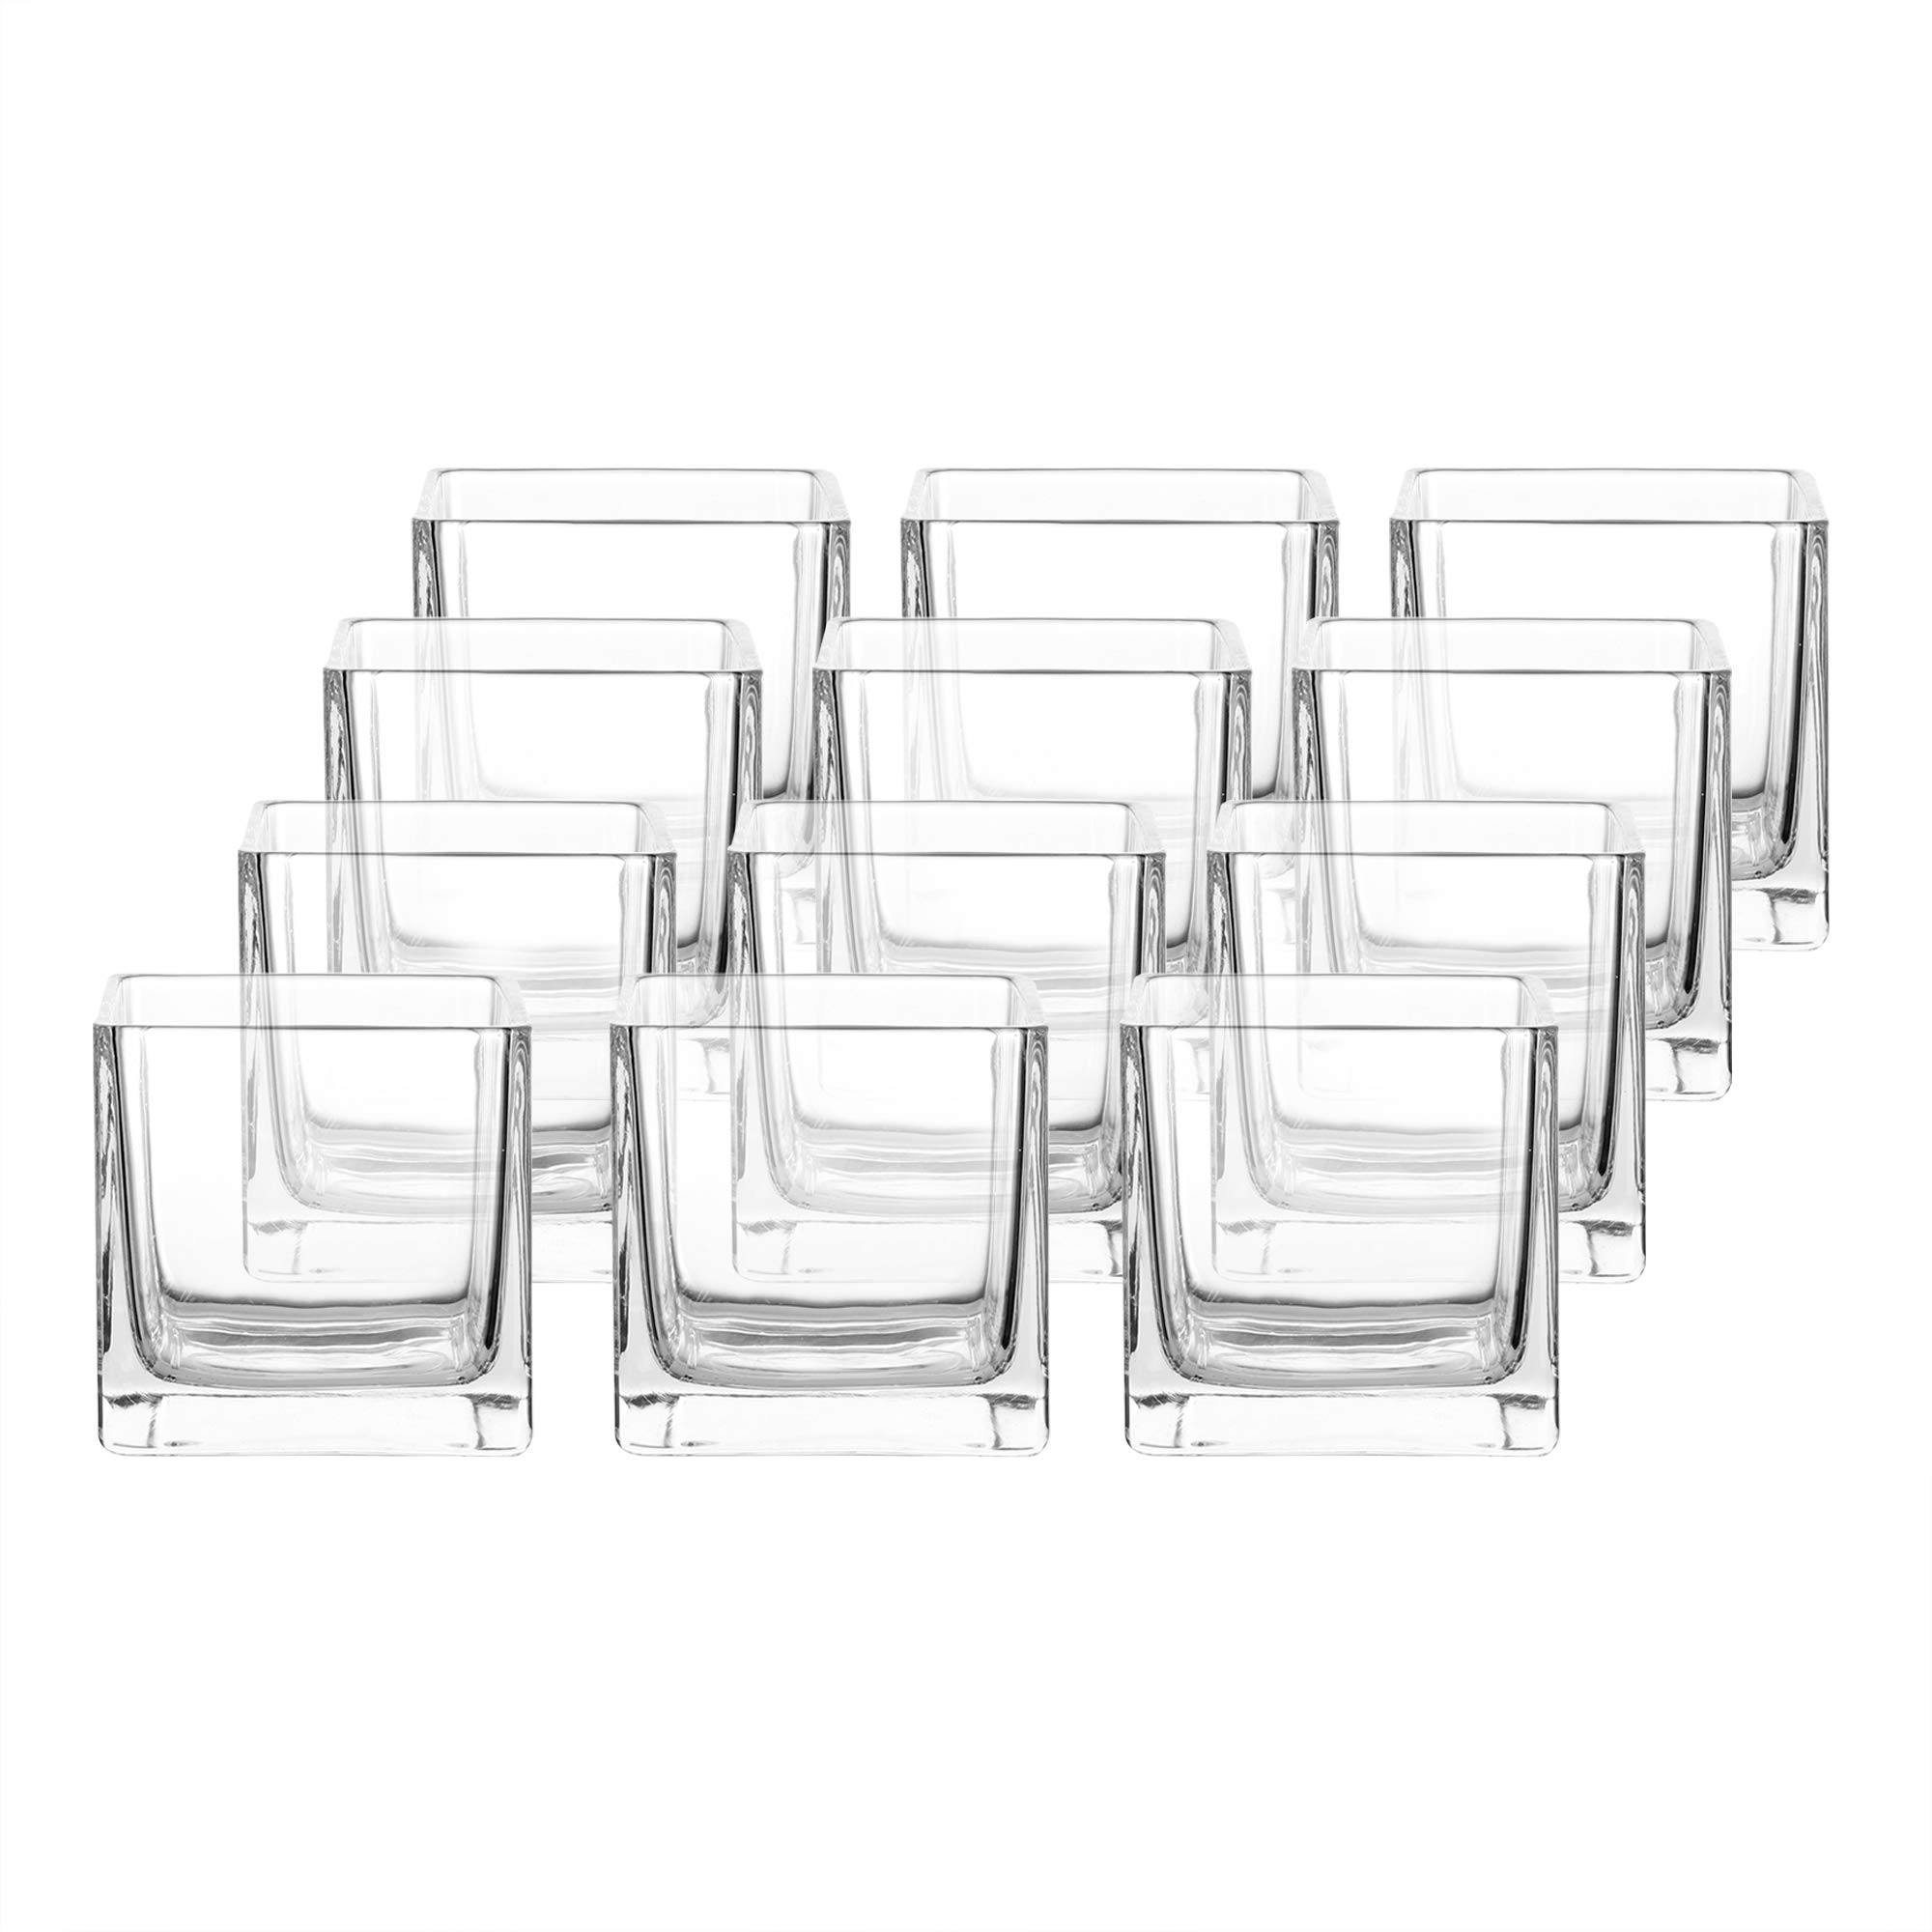 Whole Housewares 3'' Square Glass Vase, Candle Holder, 12 Pack Clear Cube Centerpiece by Whole Housewares